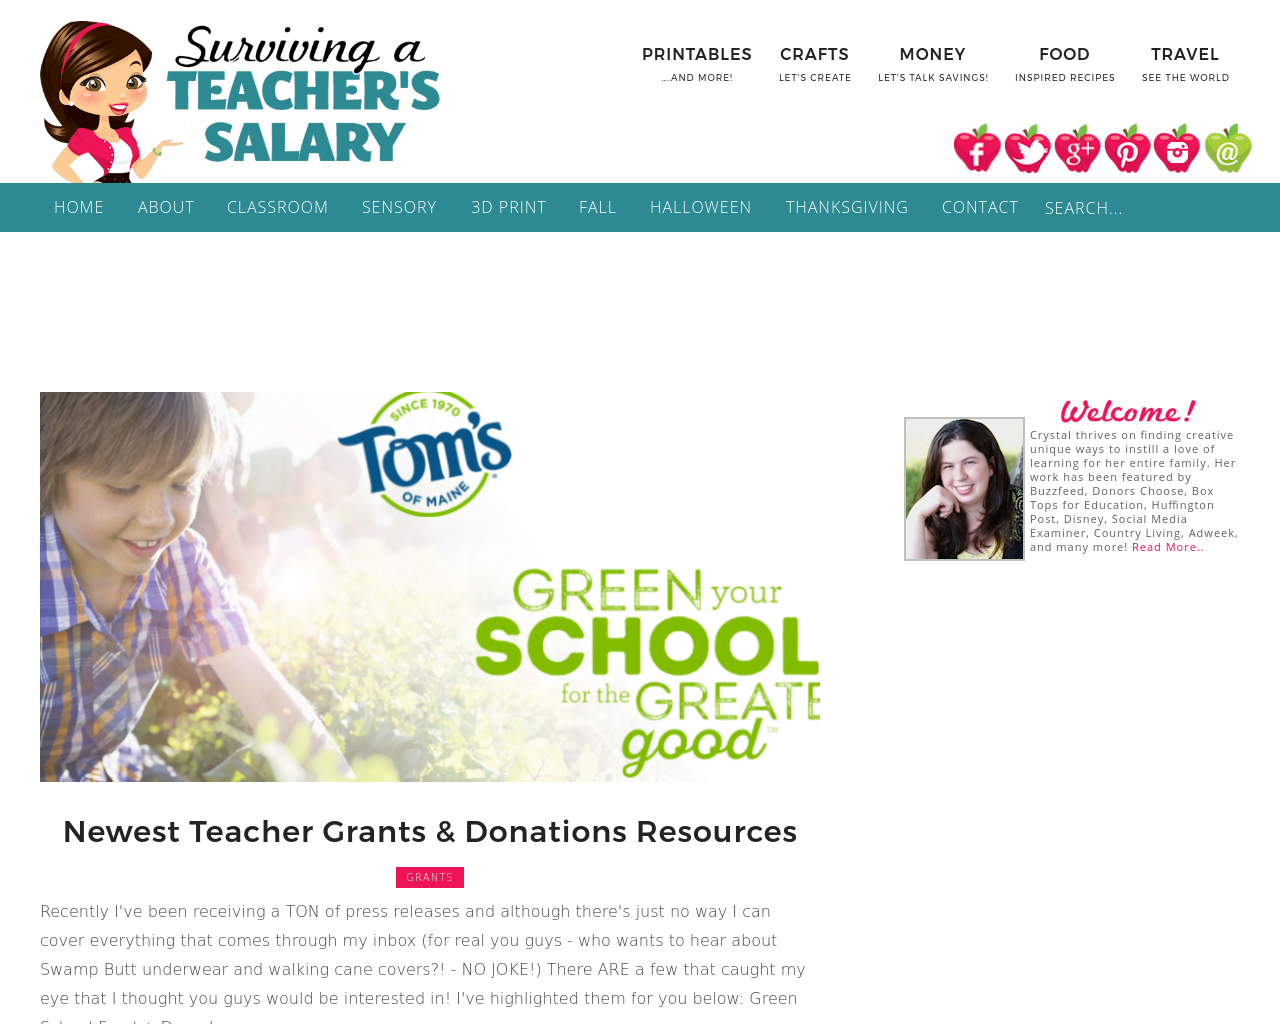 Surviving-A-Teacher's-Salary-Advertising-Reviews-Pricing